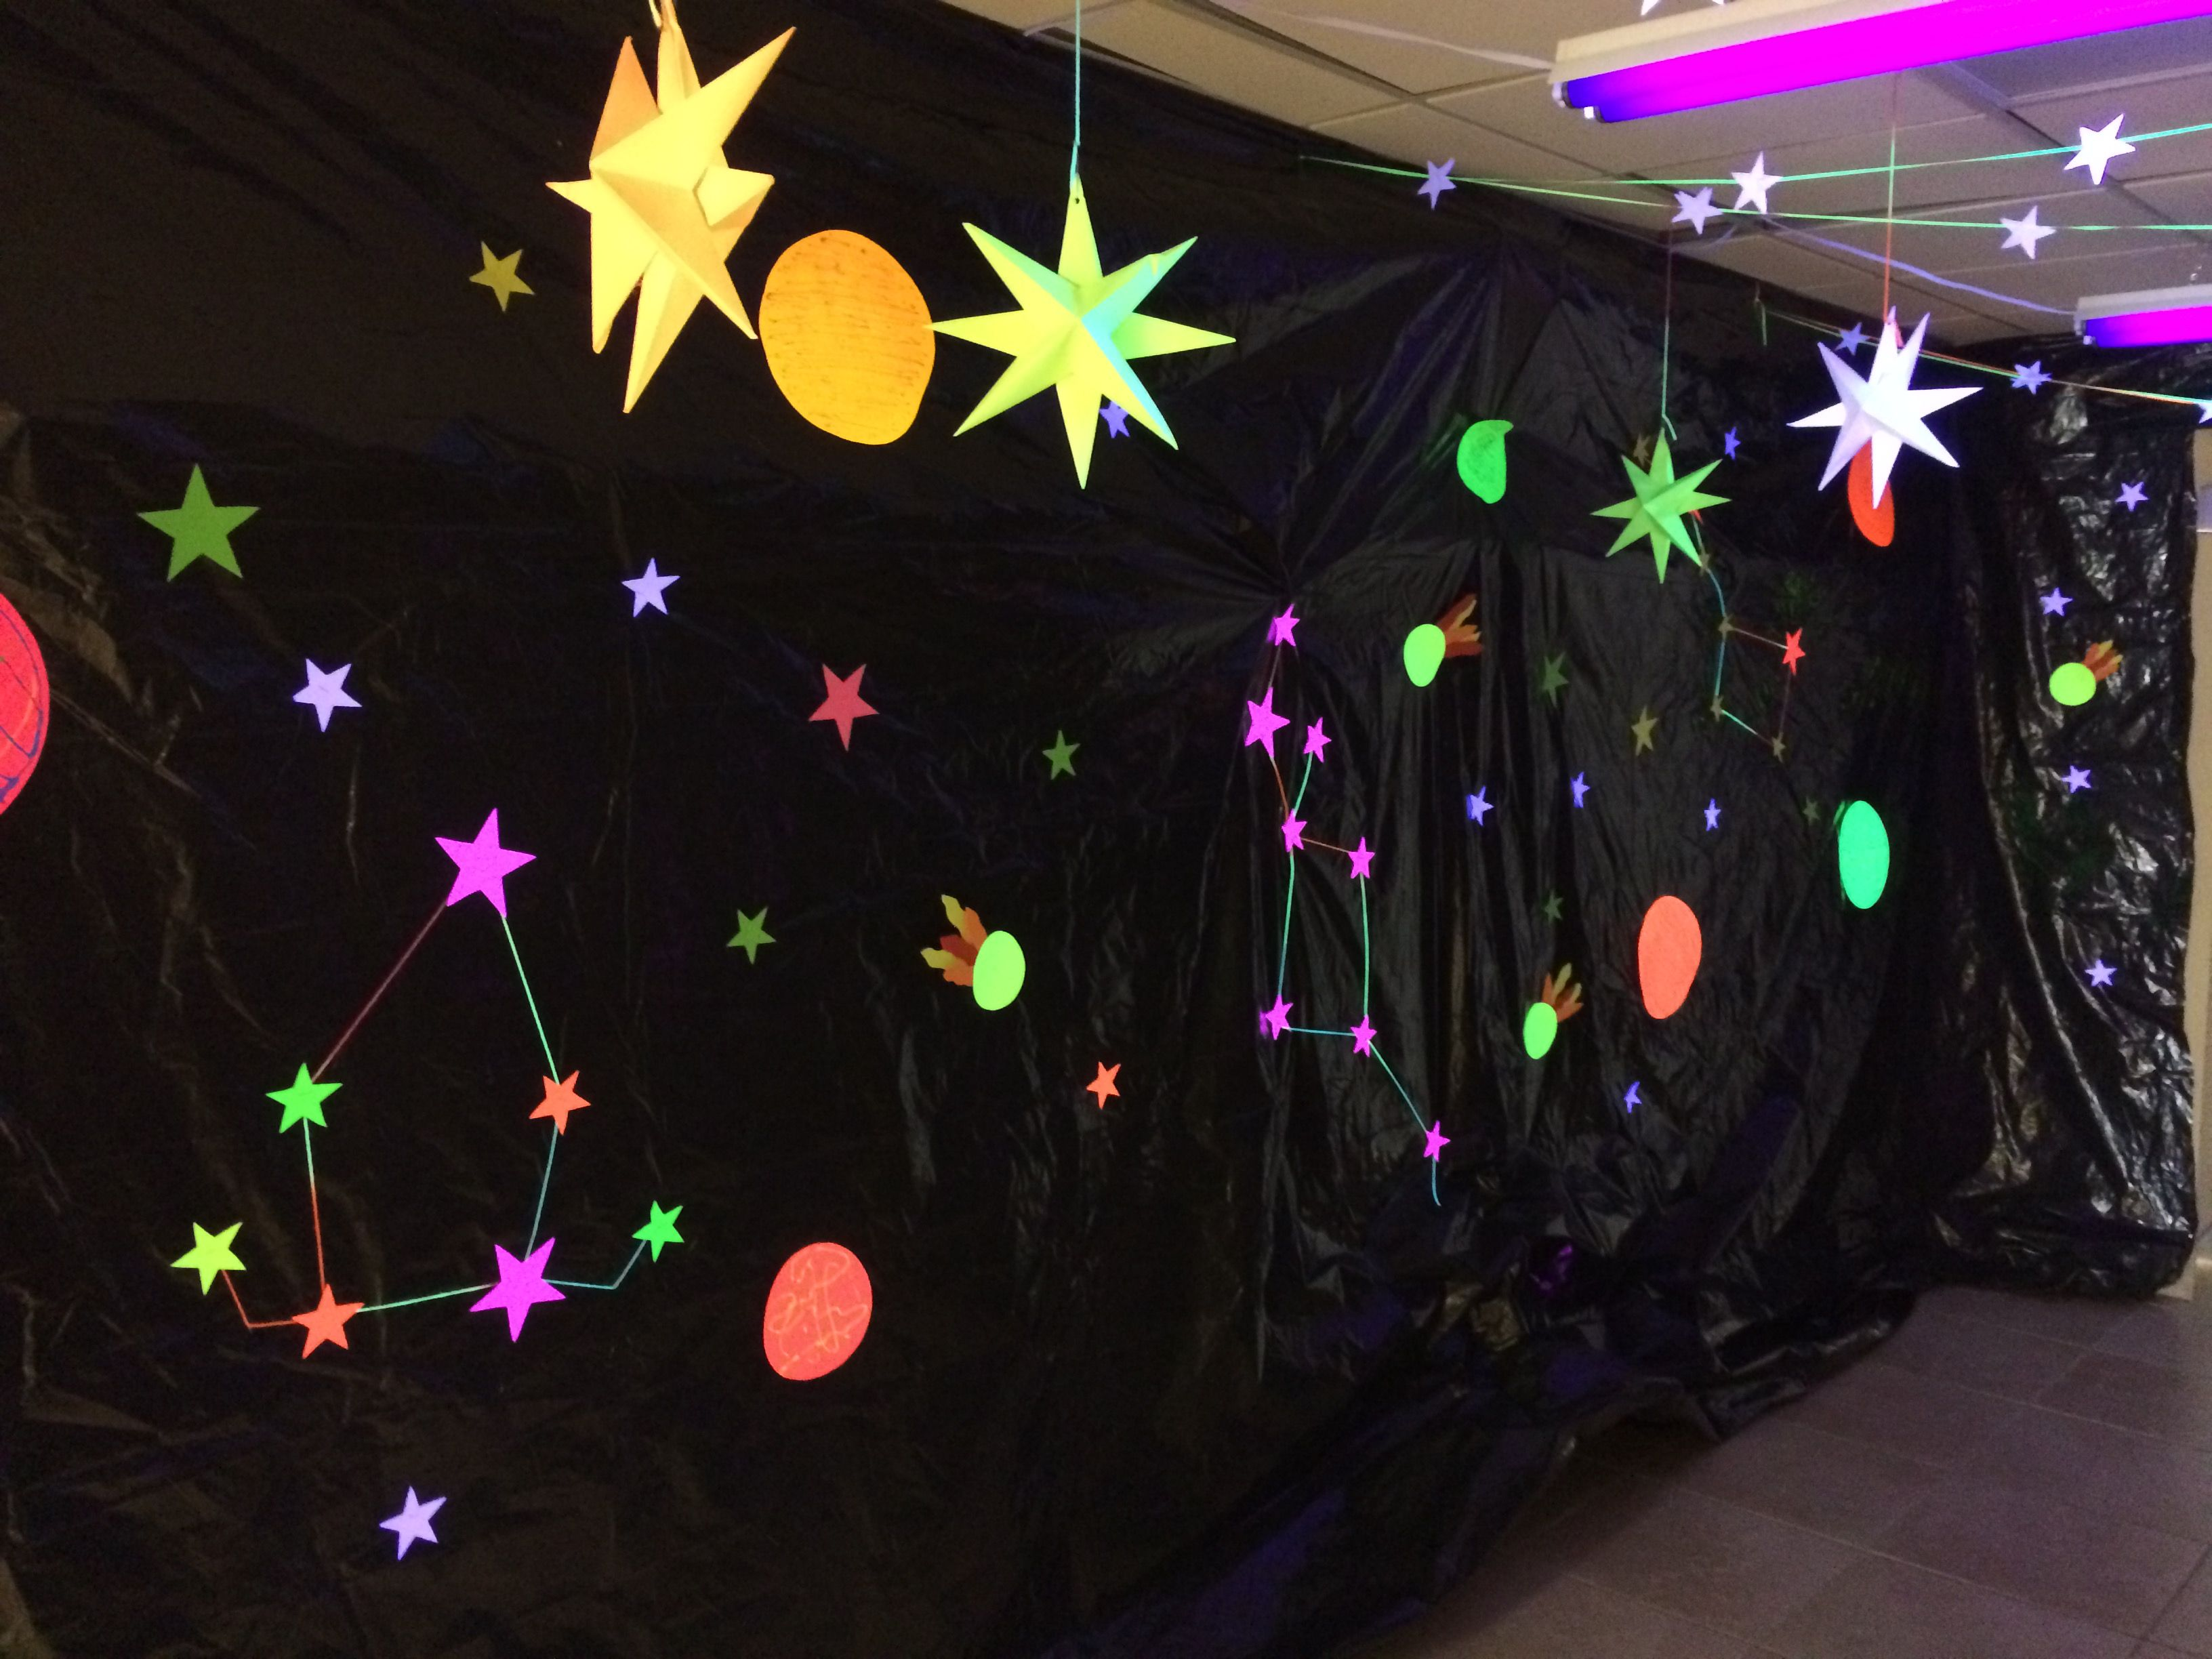 Galactic Starveyors Vbs Calvary Baptist Church Bowling Green Ky Outer Space With Black